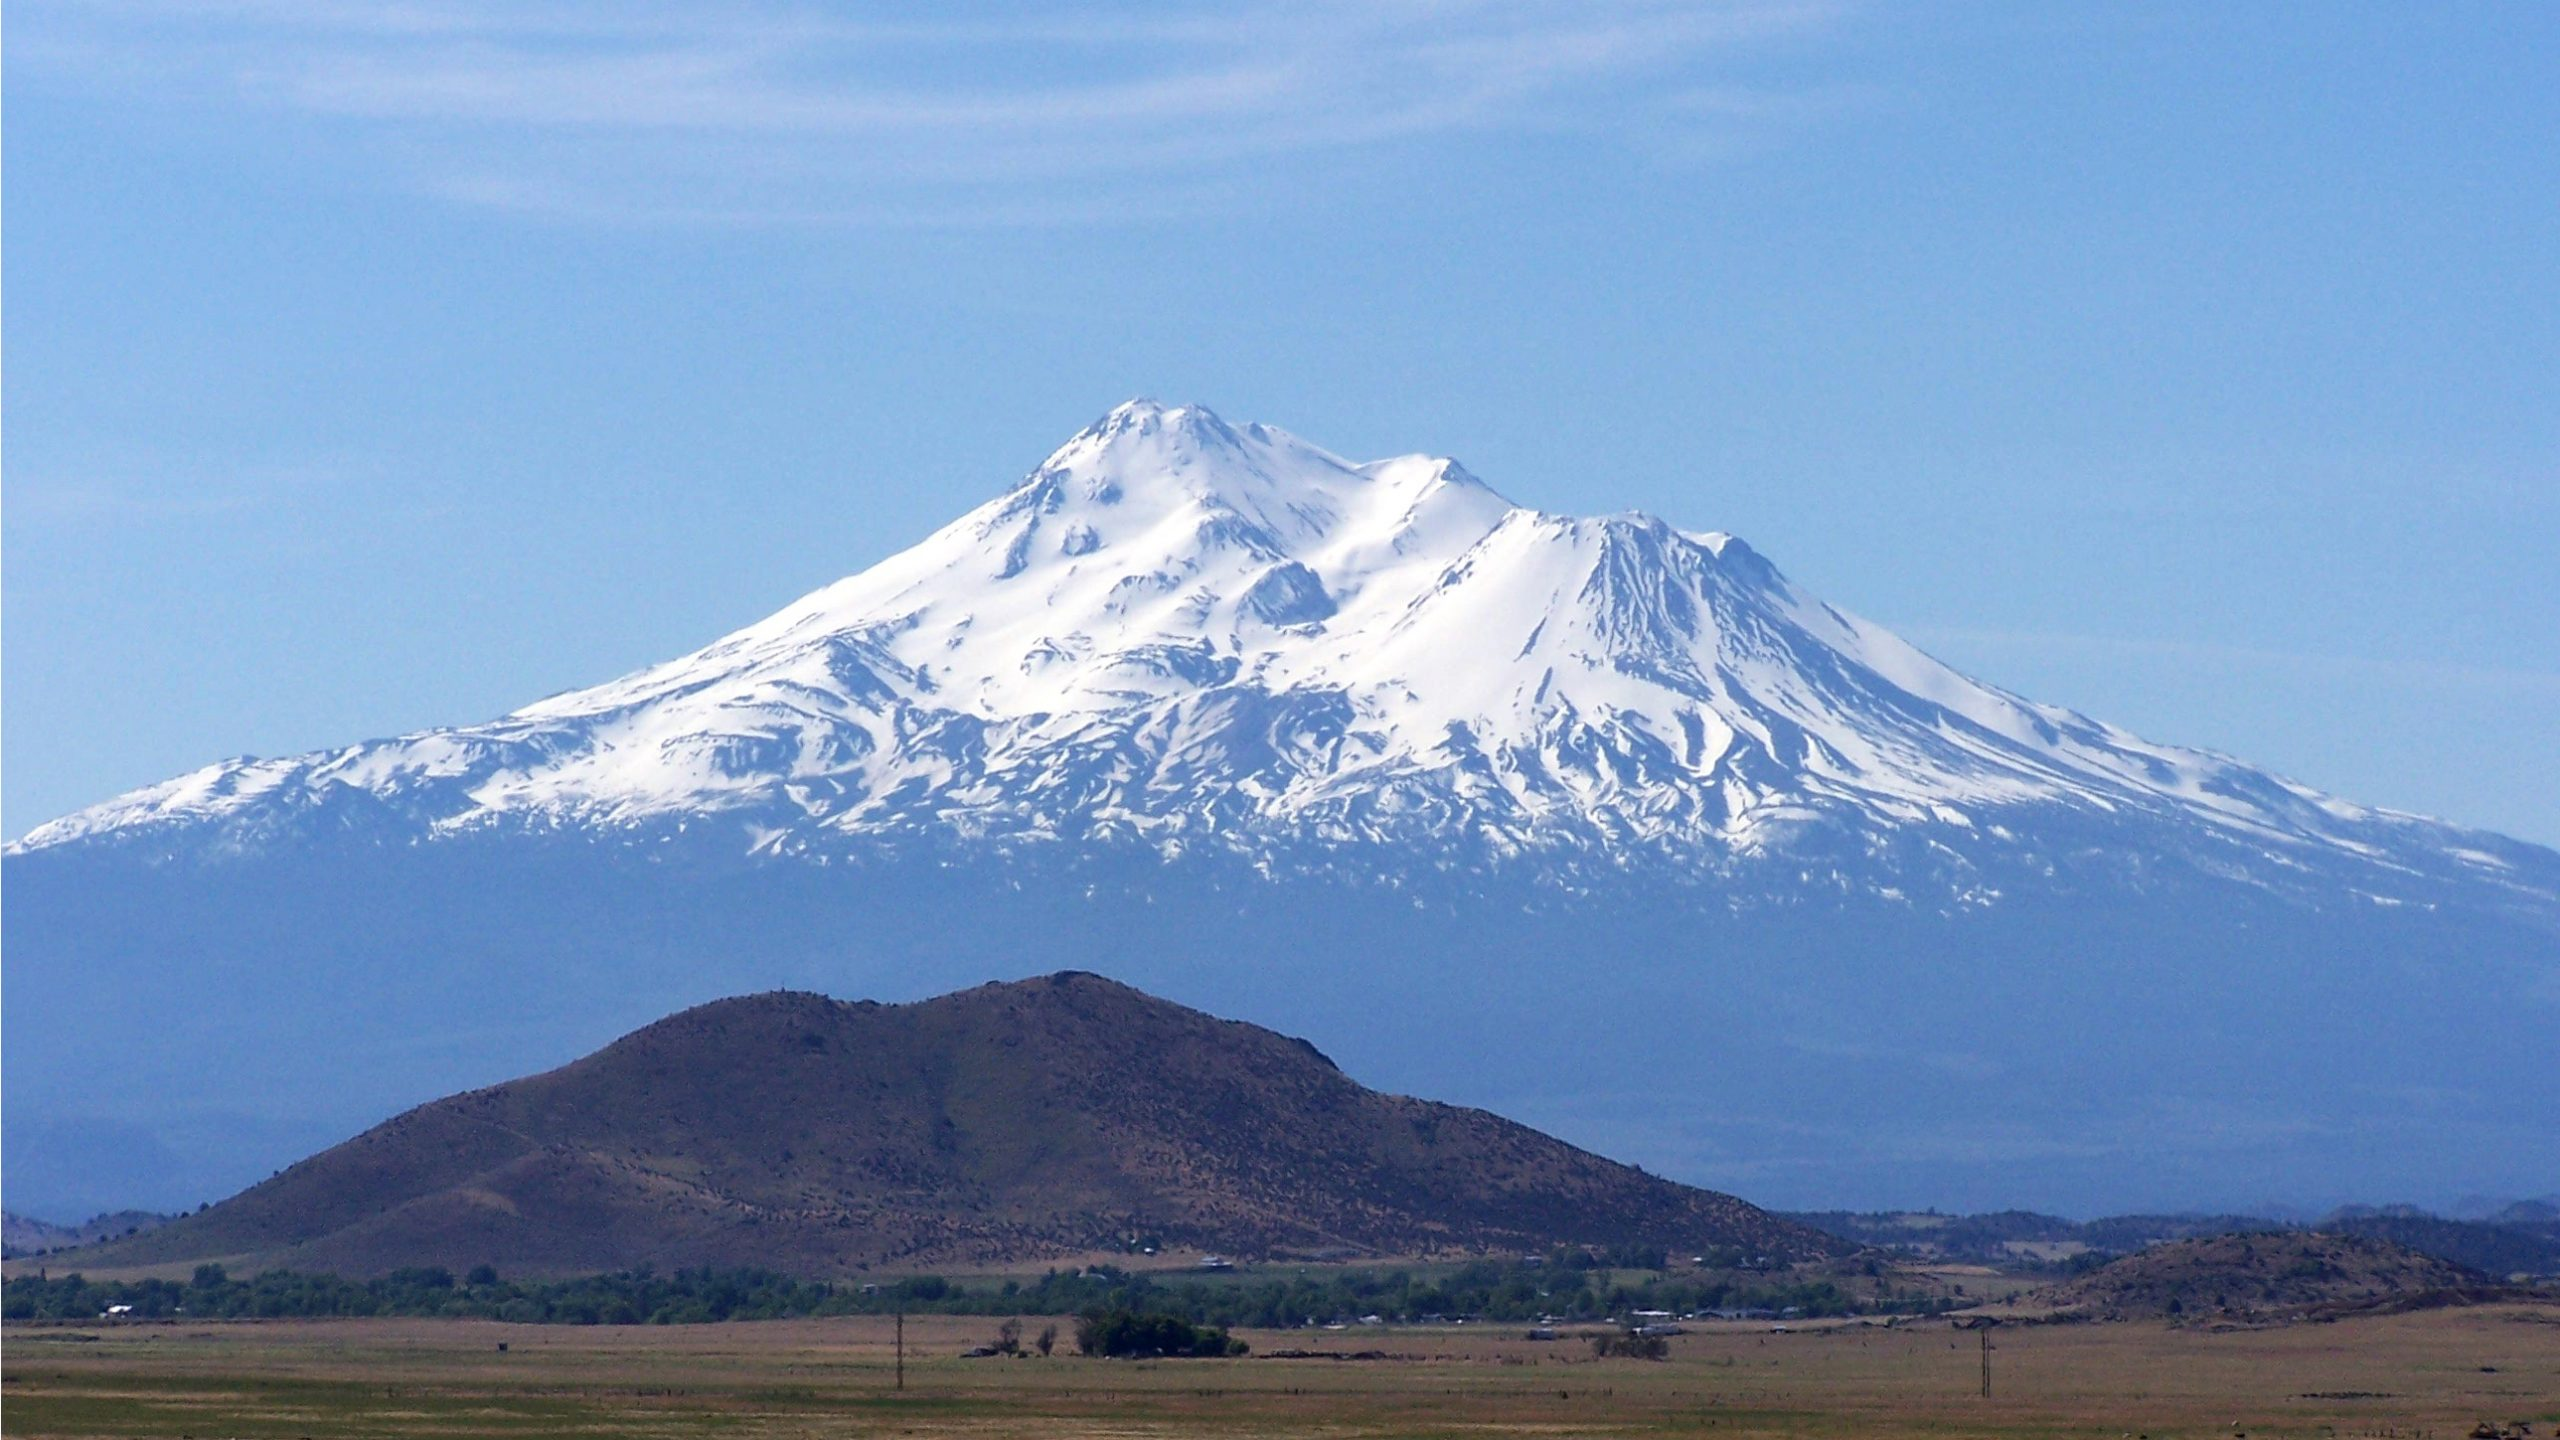 Life Itself - Snow capped view of Mount Shasta